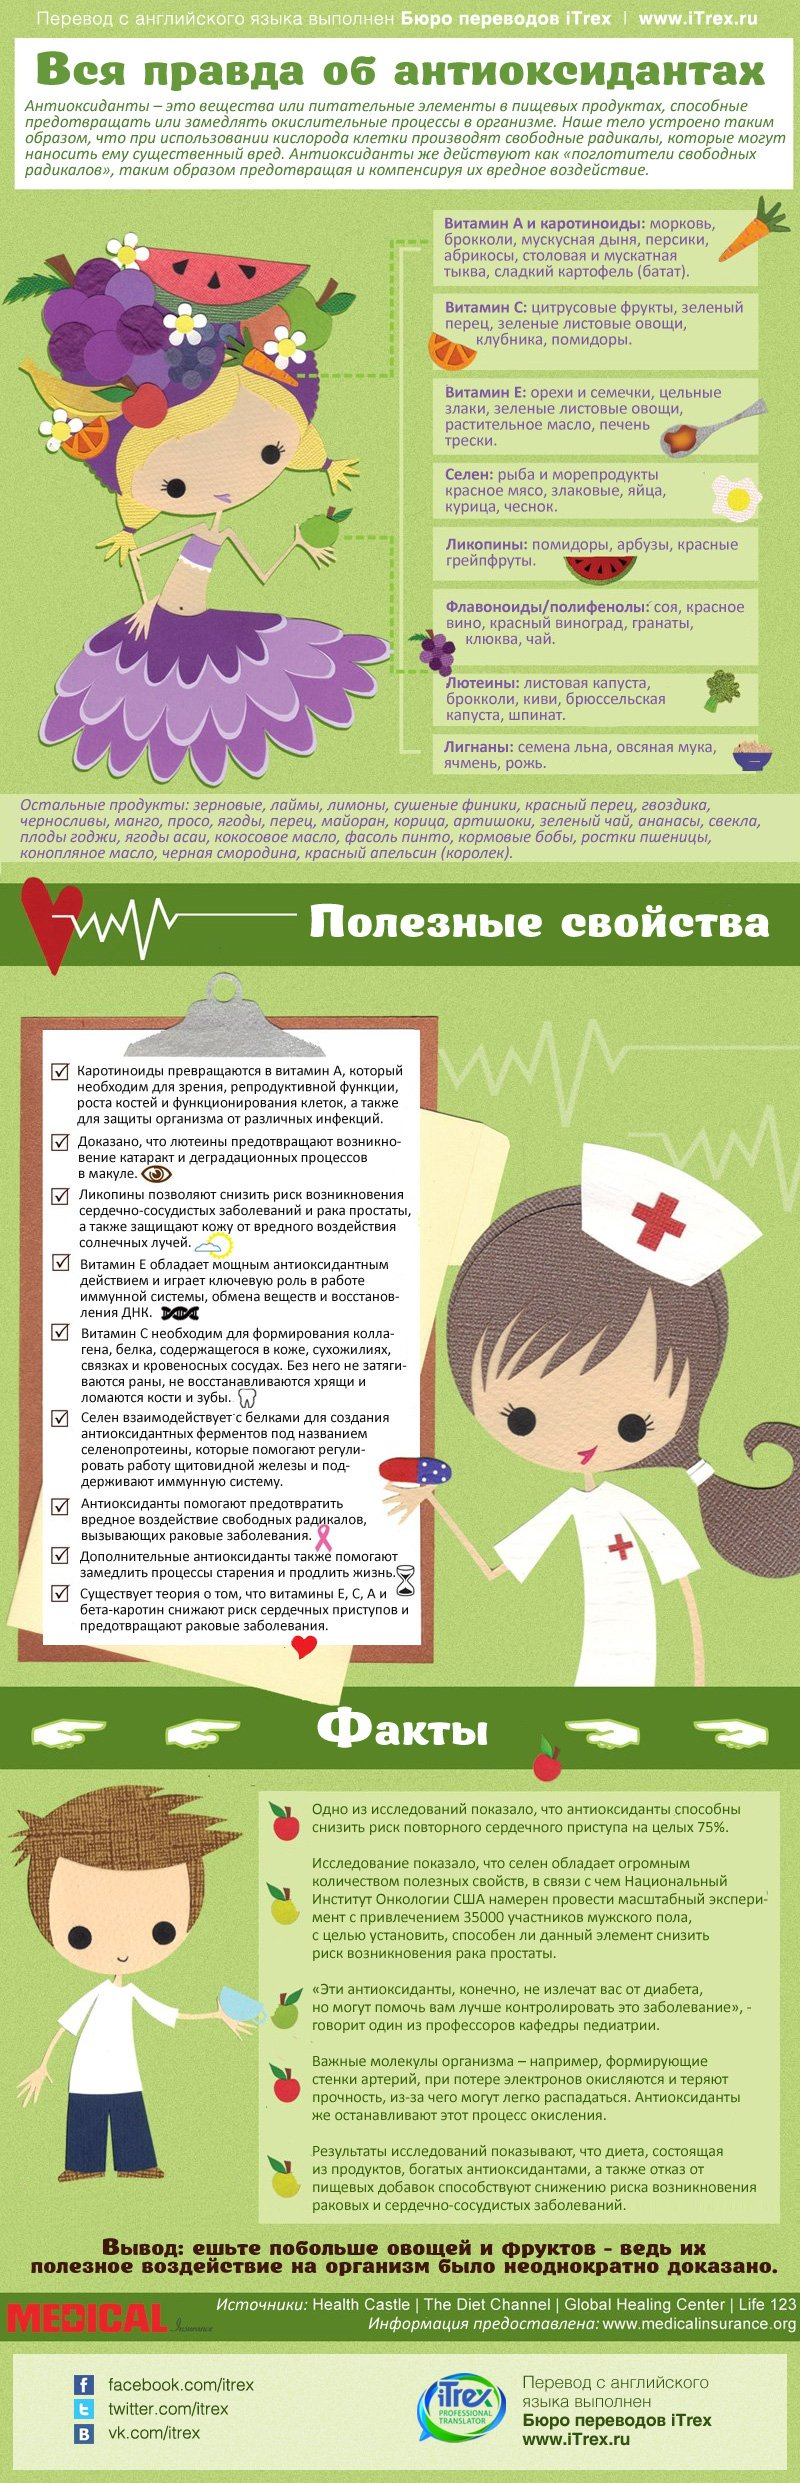 perevod russian true about antioxidantes